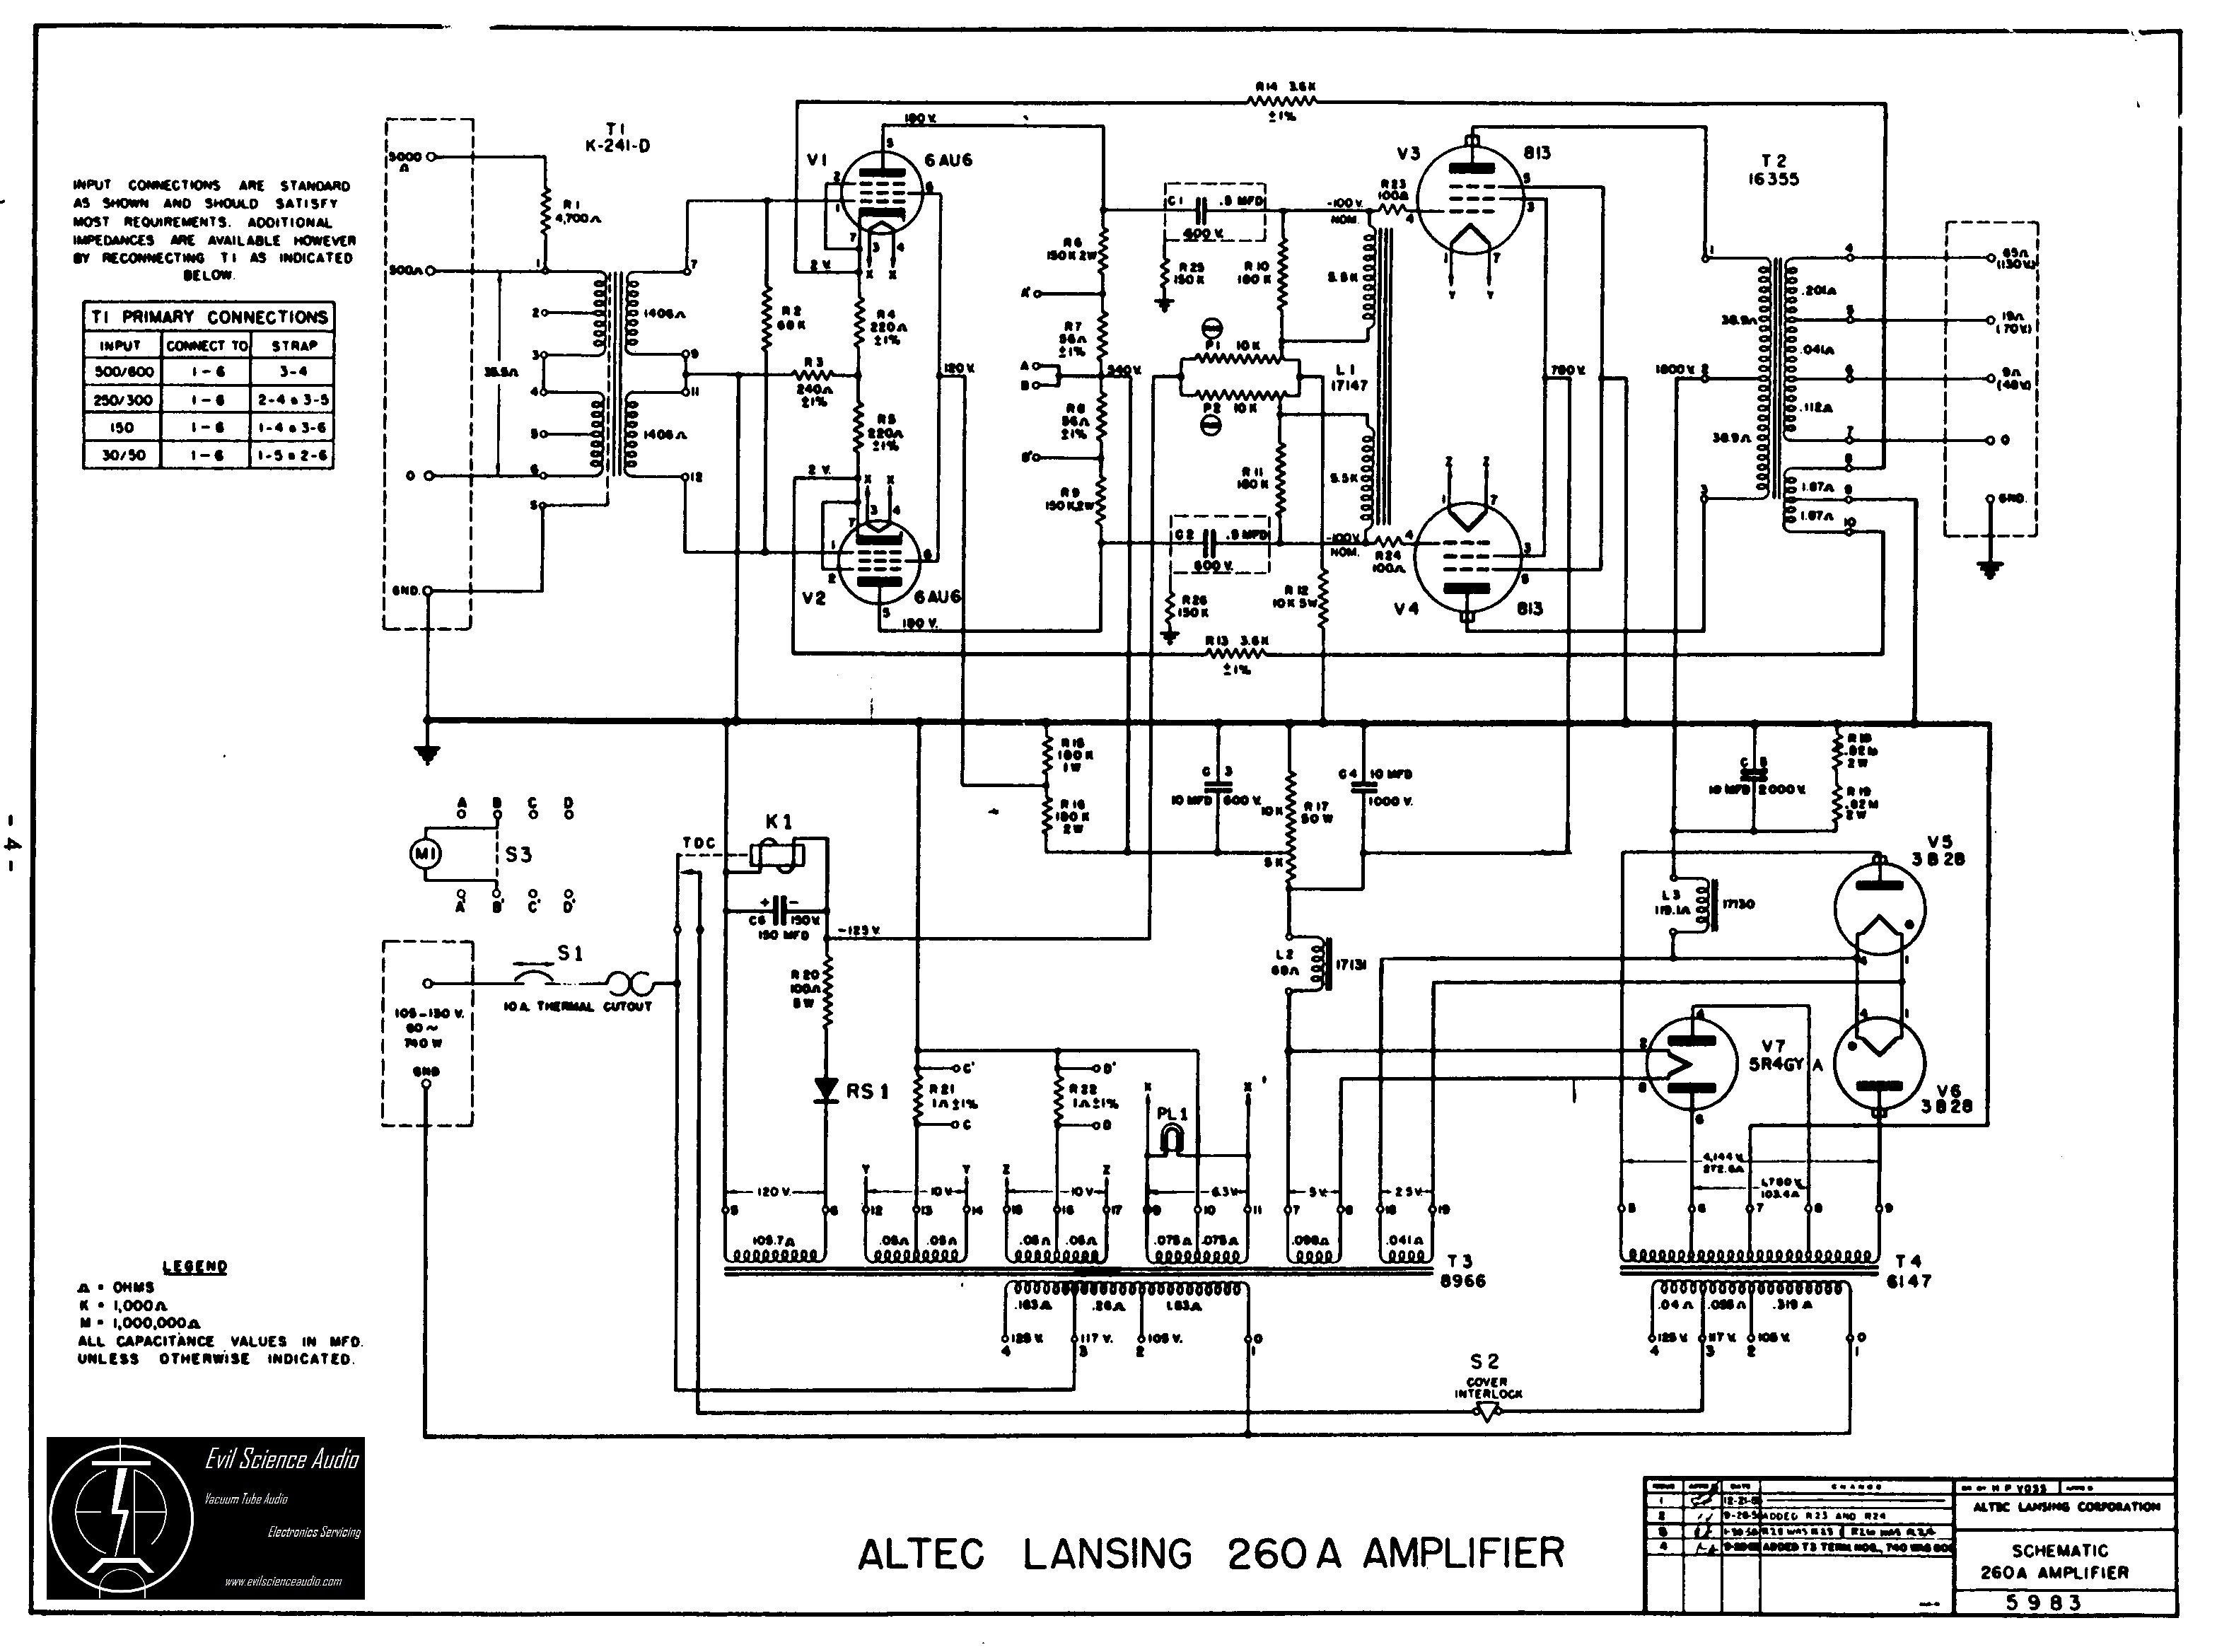 altec lansing 260a schematic hi fi schematics evil science audio Altec Bucket Wiring-Diagram at aneh.co